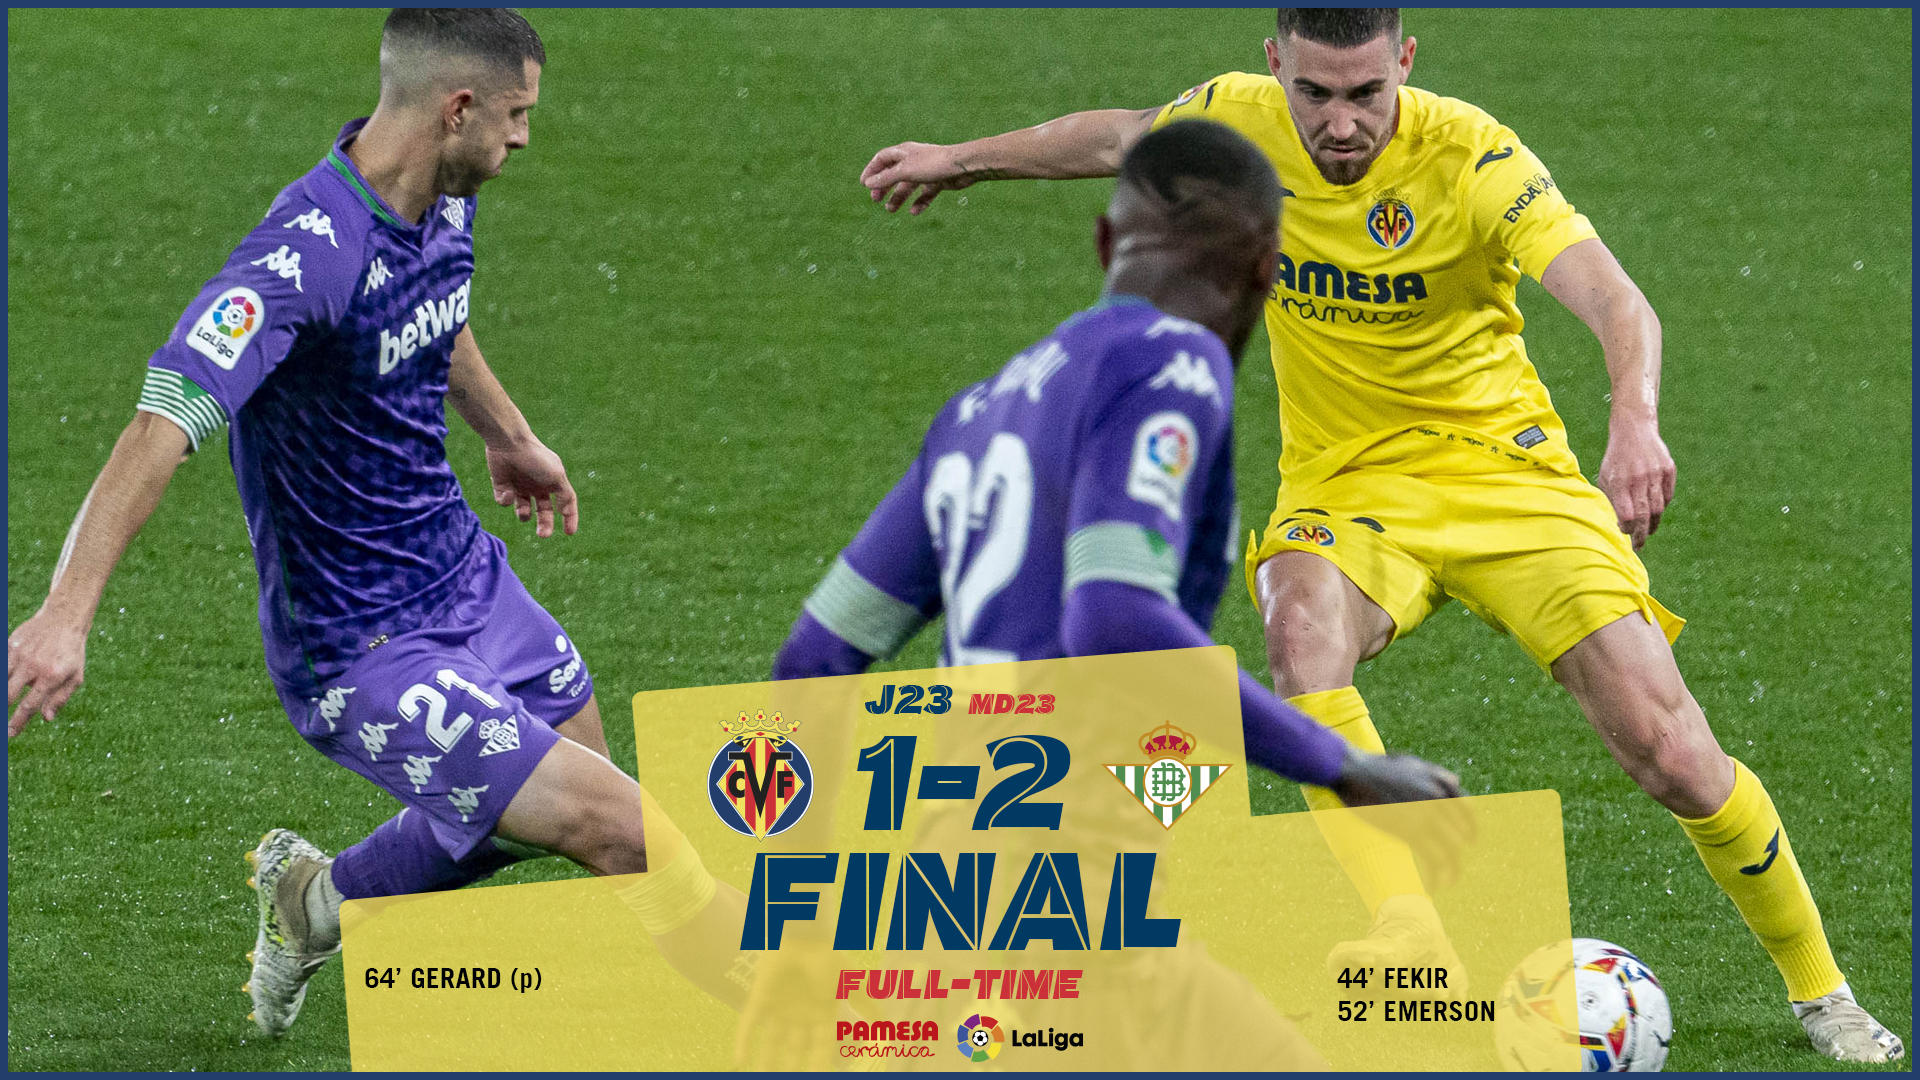 FINAL: Villarreal 1 - 2 Betis / Fuente: @VillarrealCF